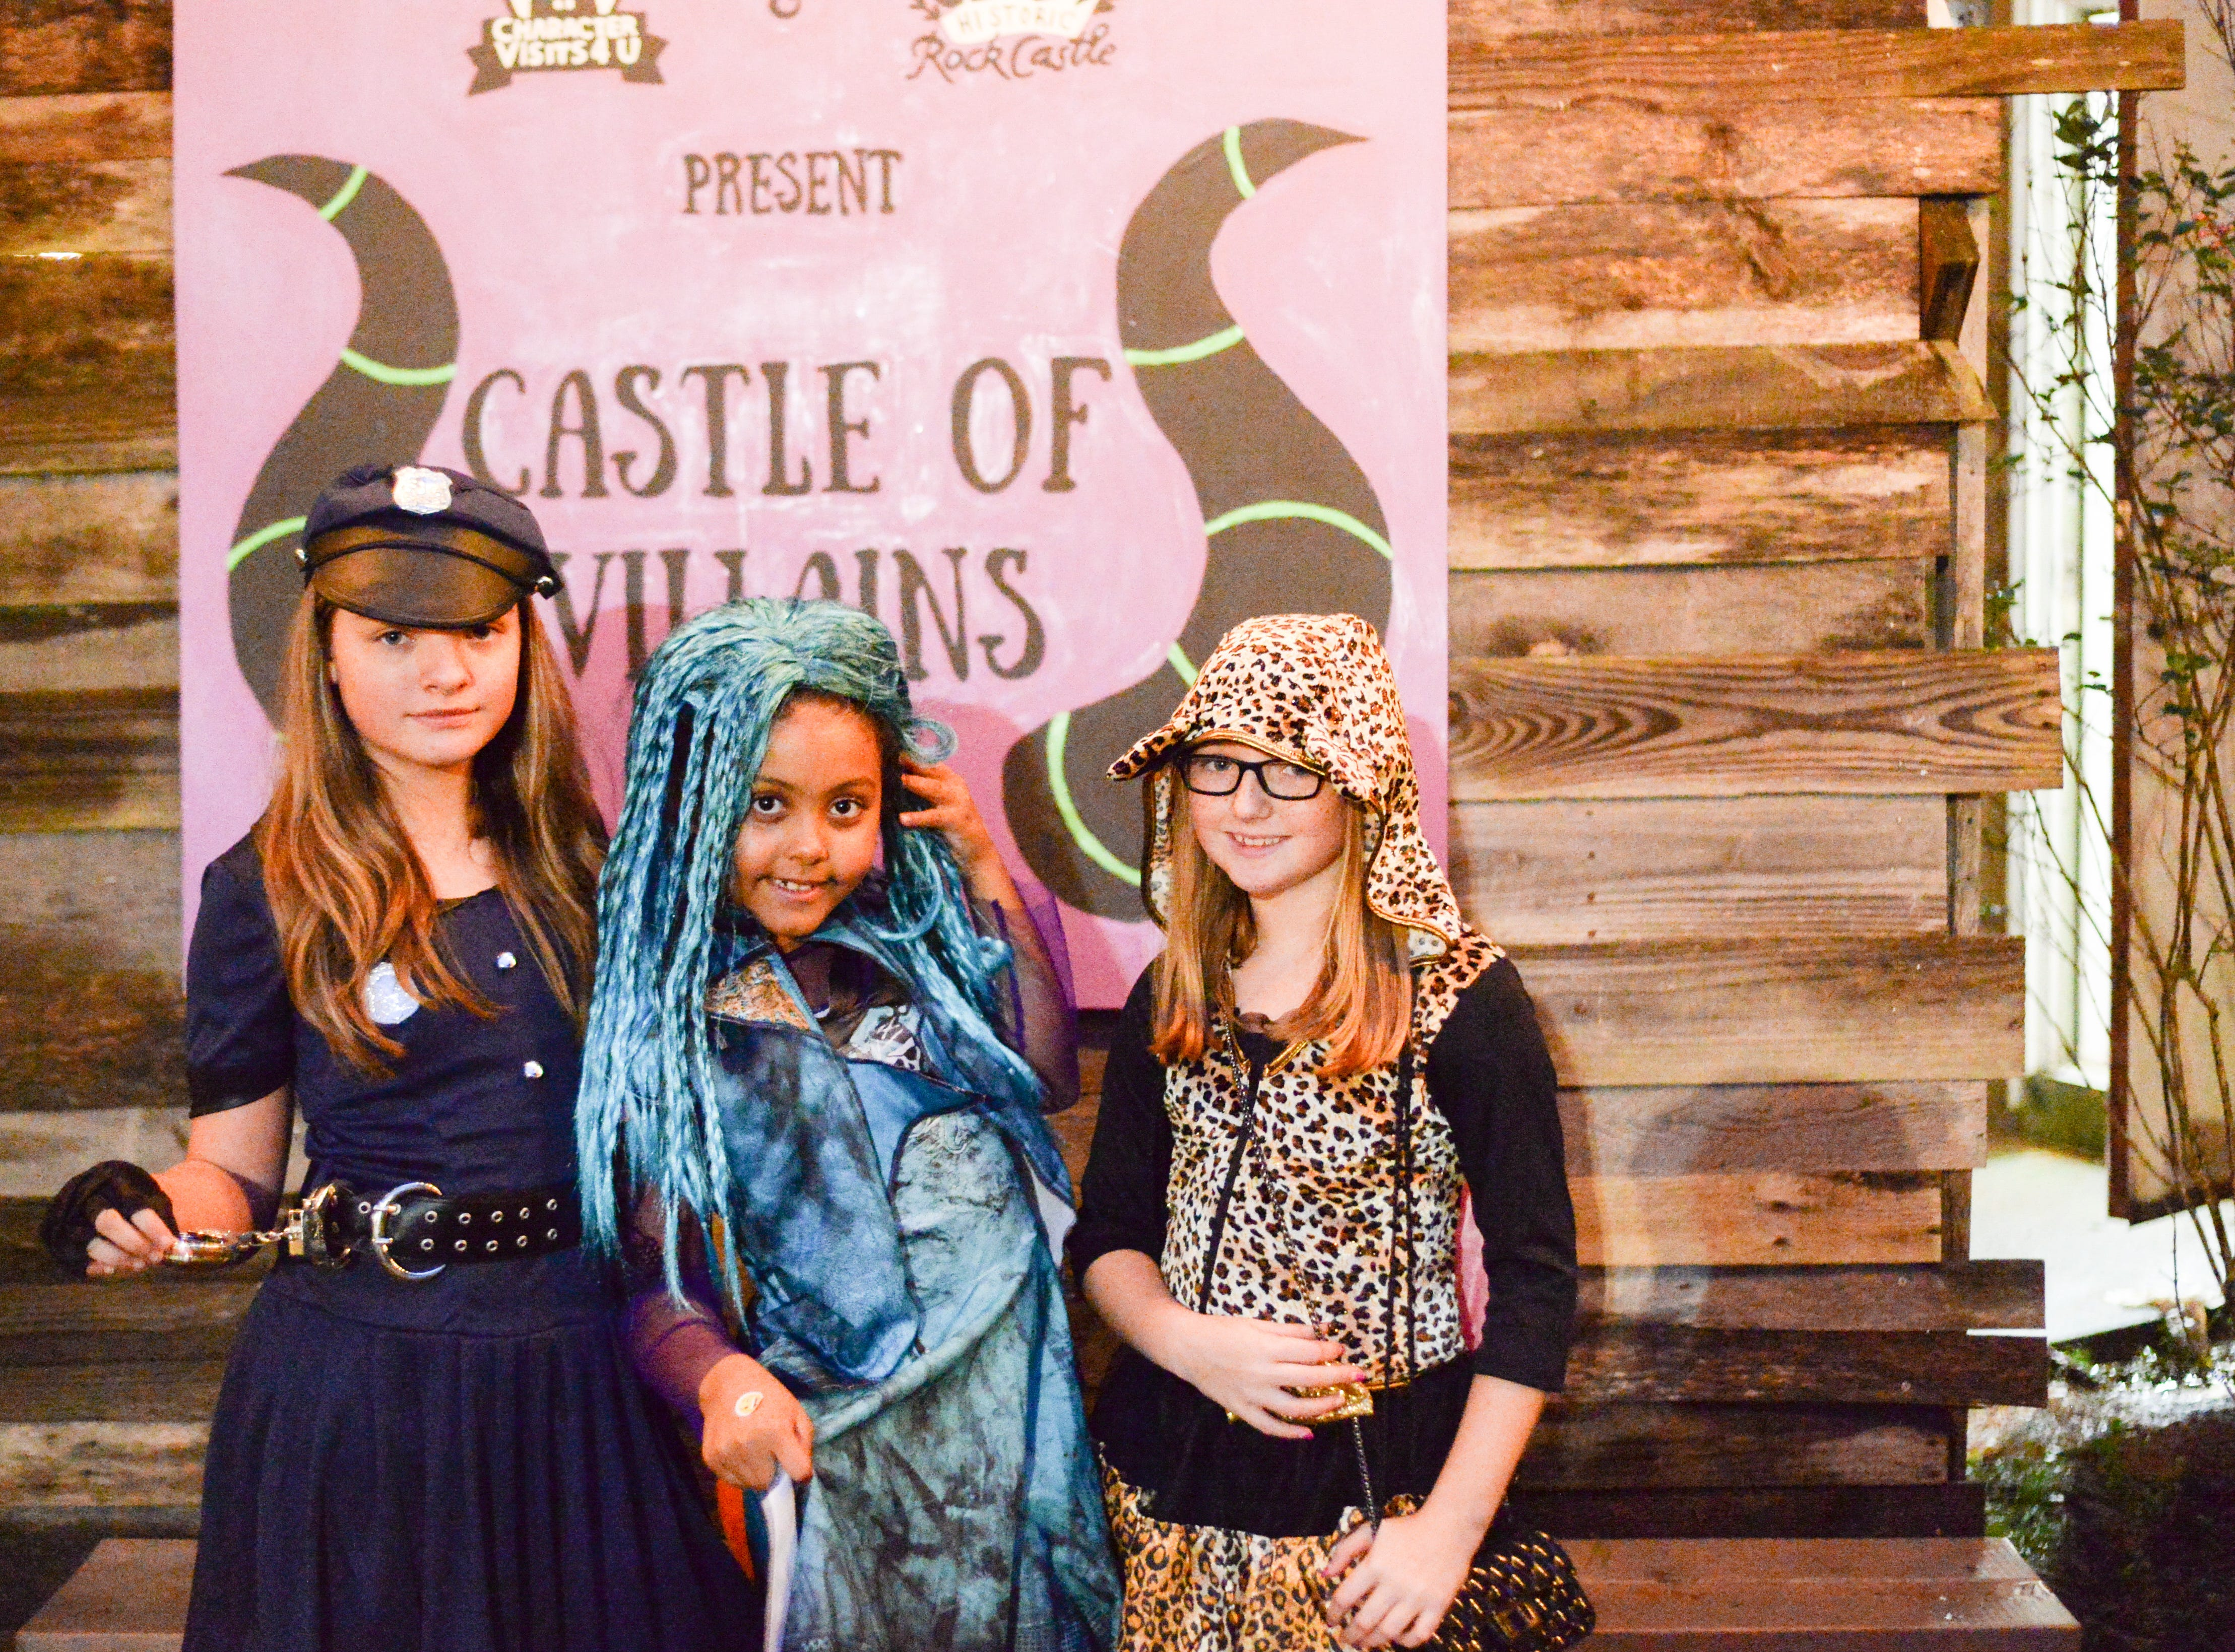 Savannah, Braelyn and Kaci have a blast at the Castle of Villains trick or treating event at Historic Rock Castle in Hendersonville on Friday, Oct. 26.